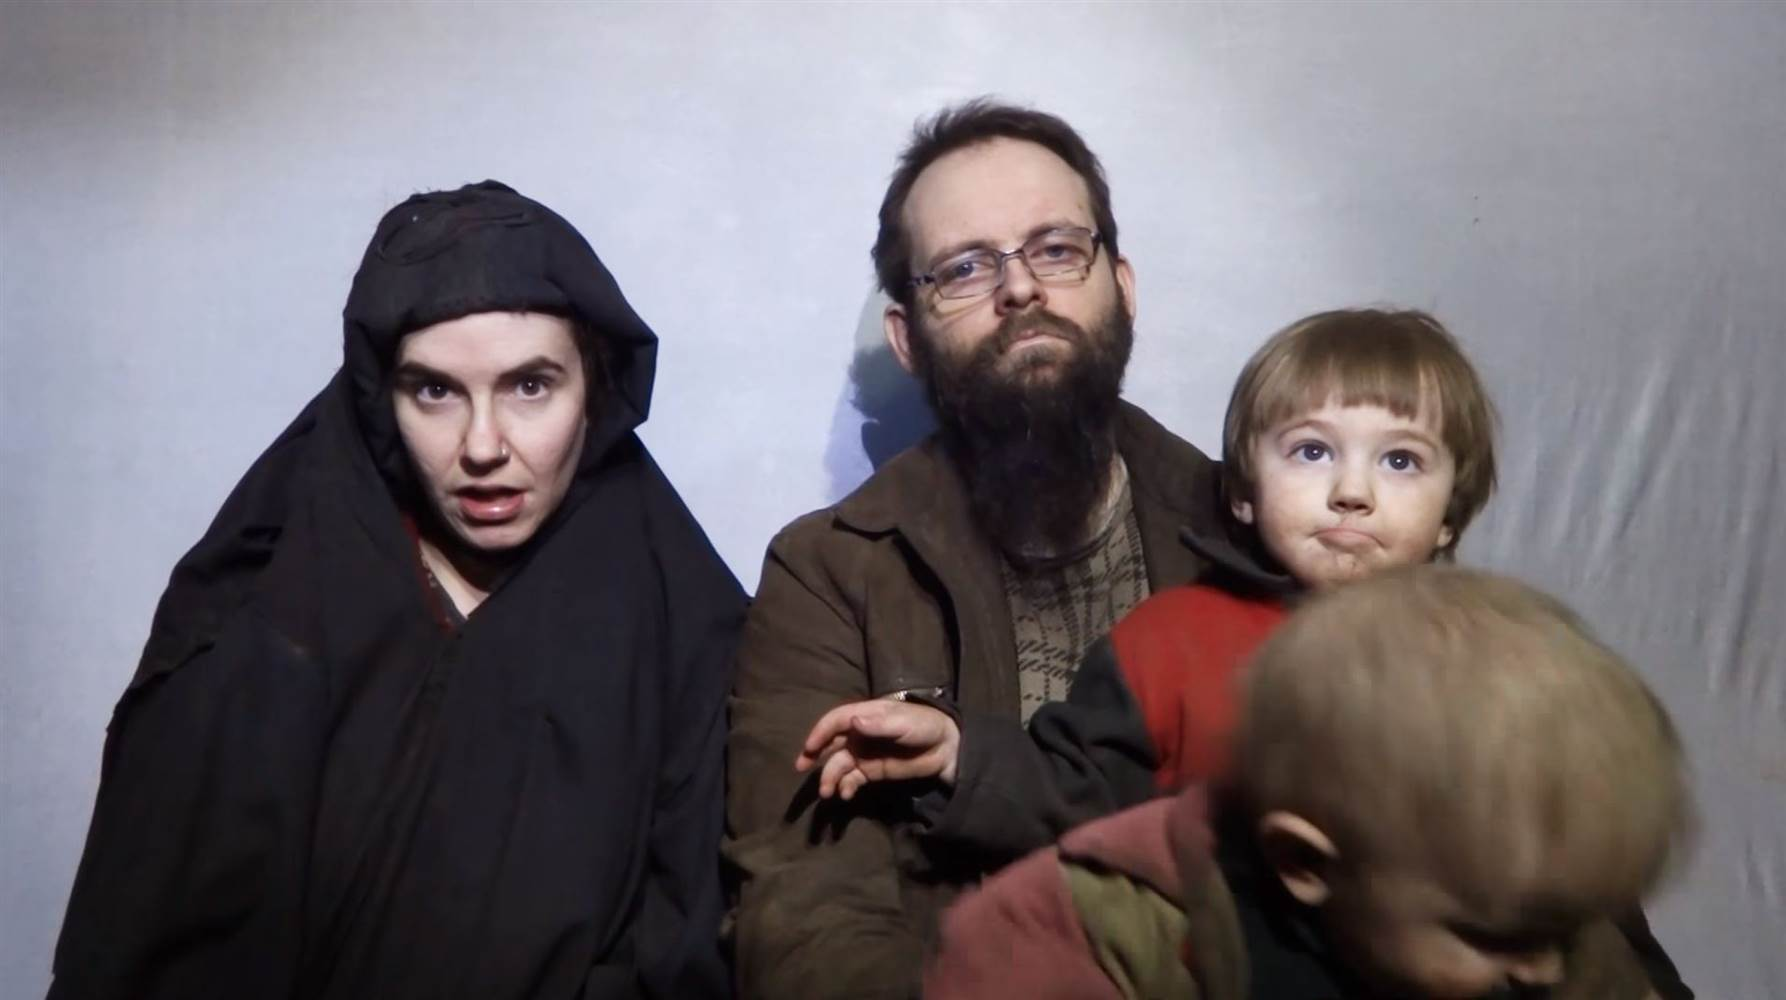 FULL STORY: Caitlan Coleman and her family have been released by the Taliban https://t.co/ua0zoMhyOC https://t.co/DATKGsaICr